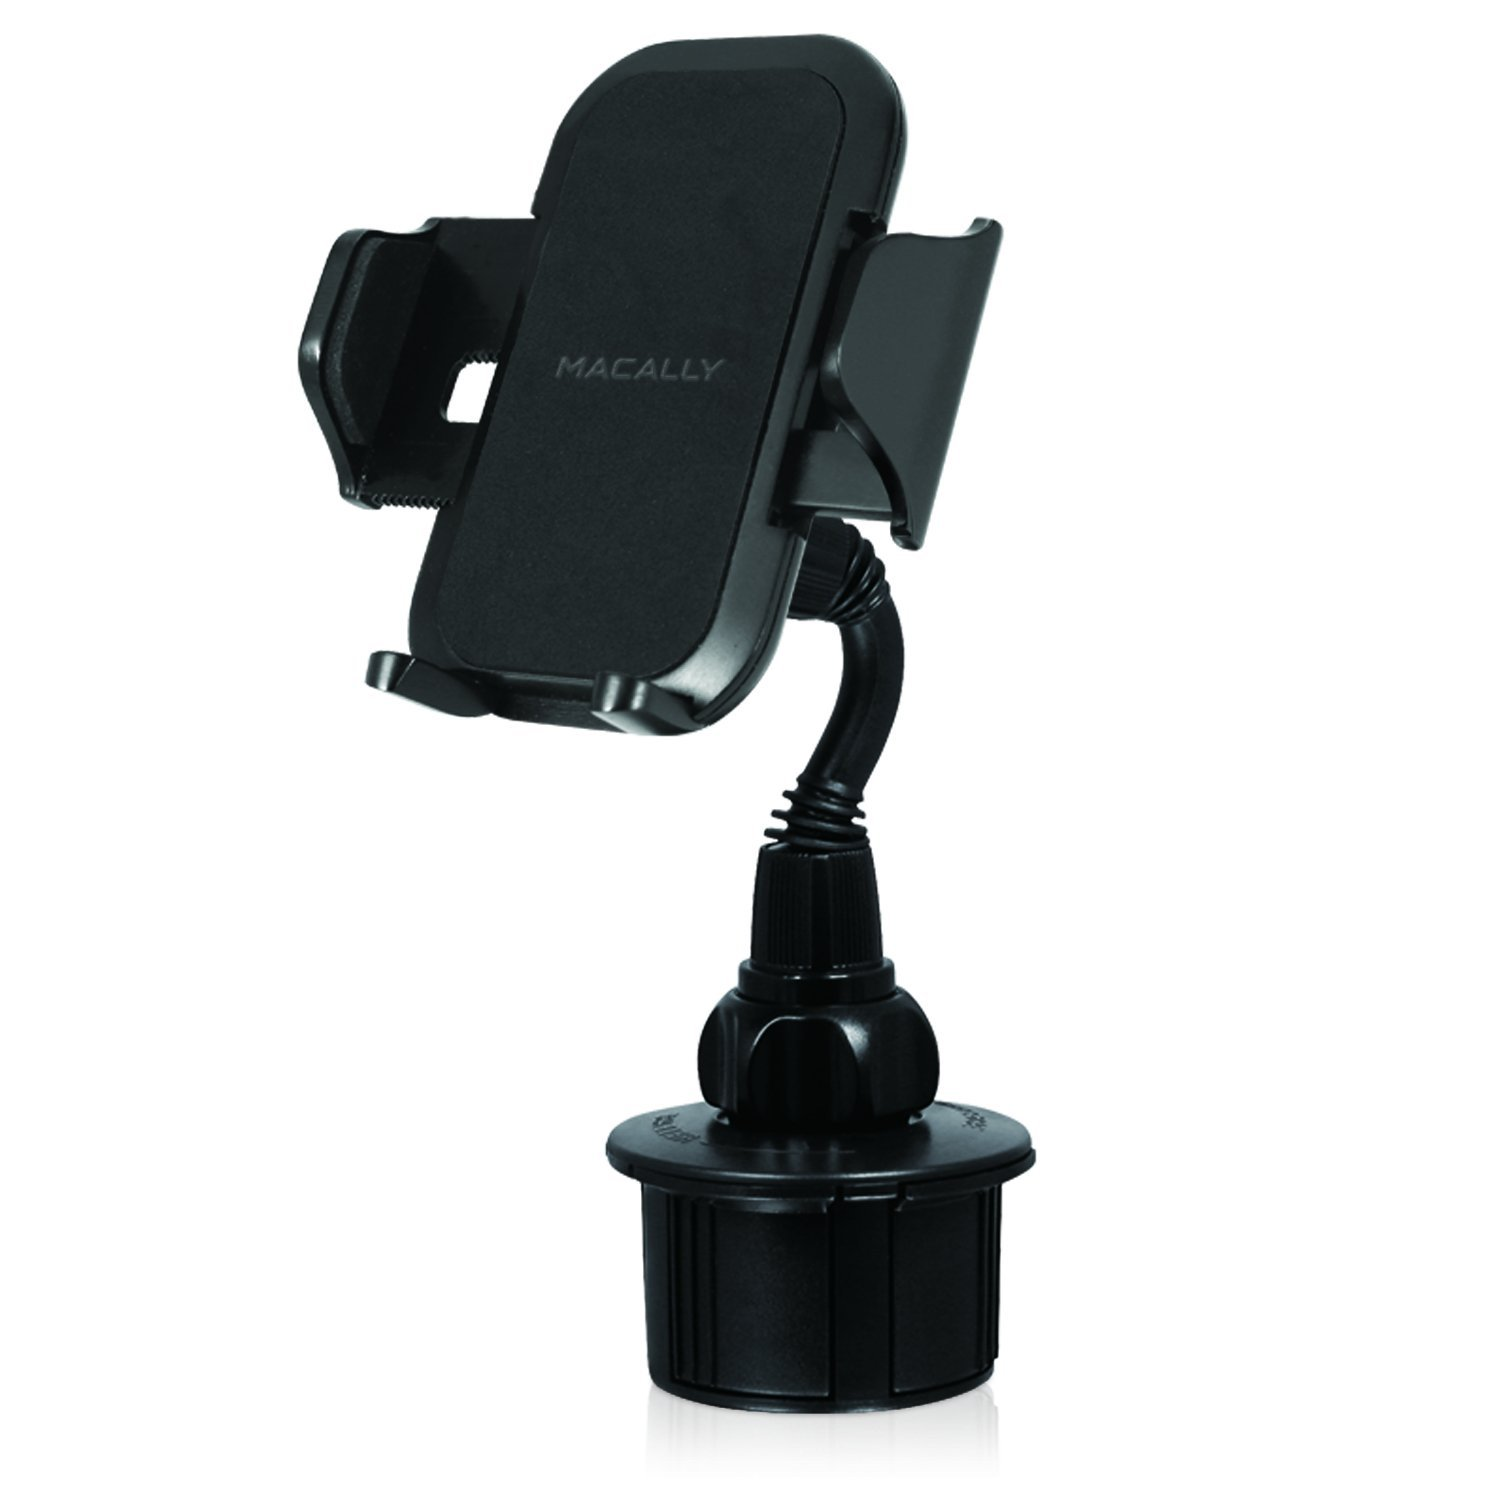 MCUPMP cup holder mount iPhone 6